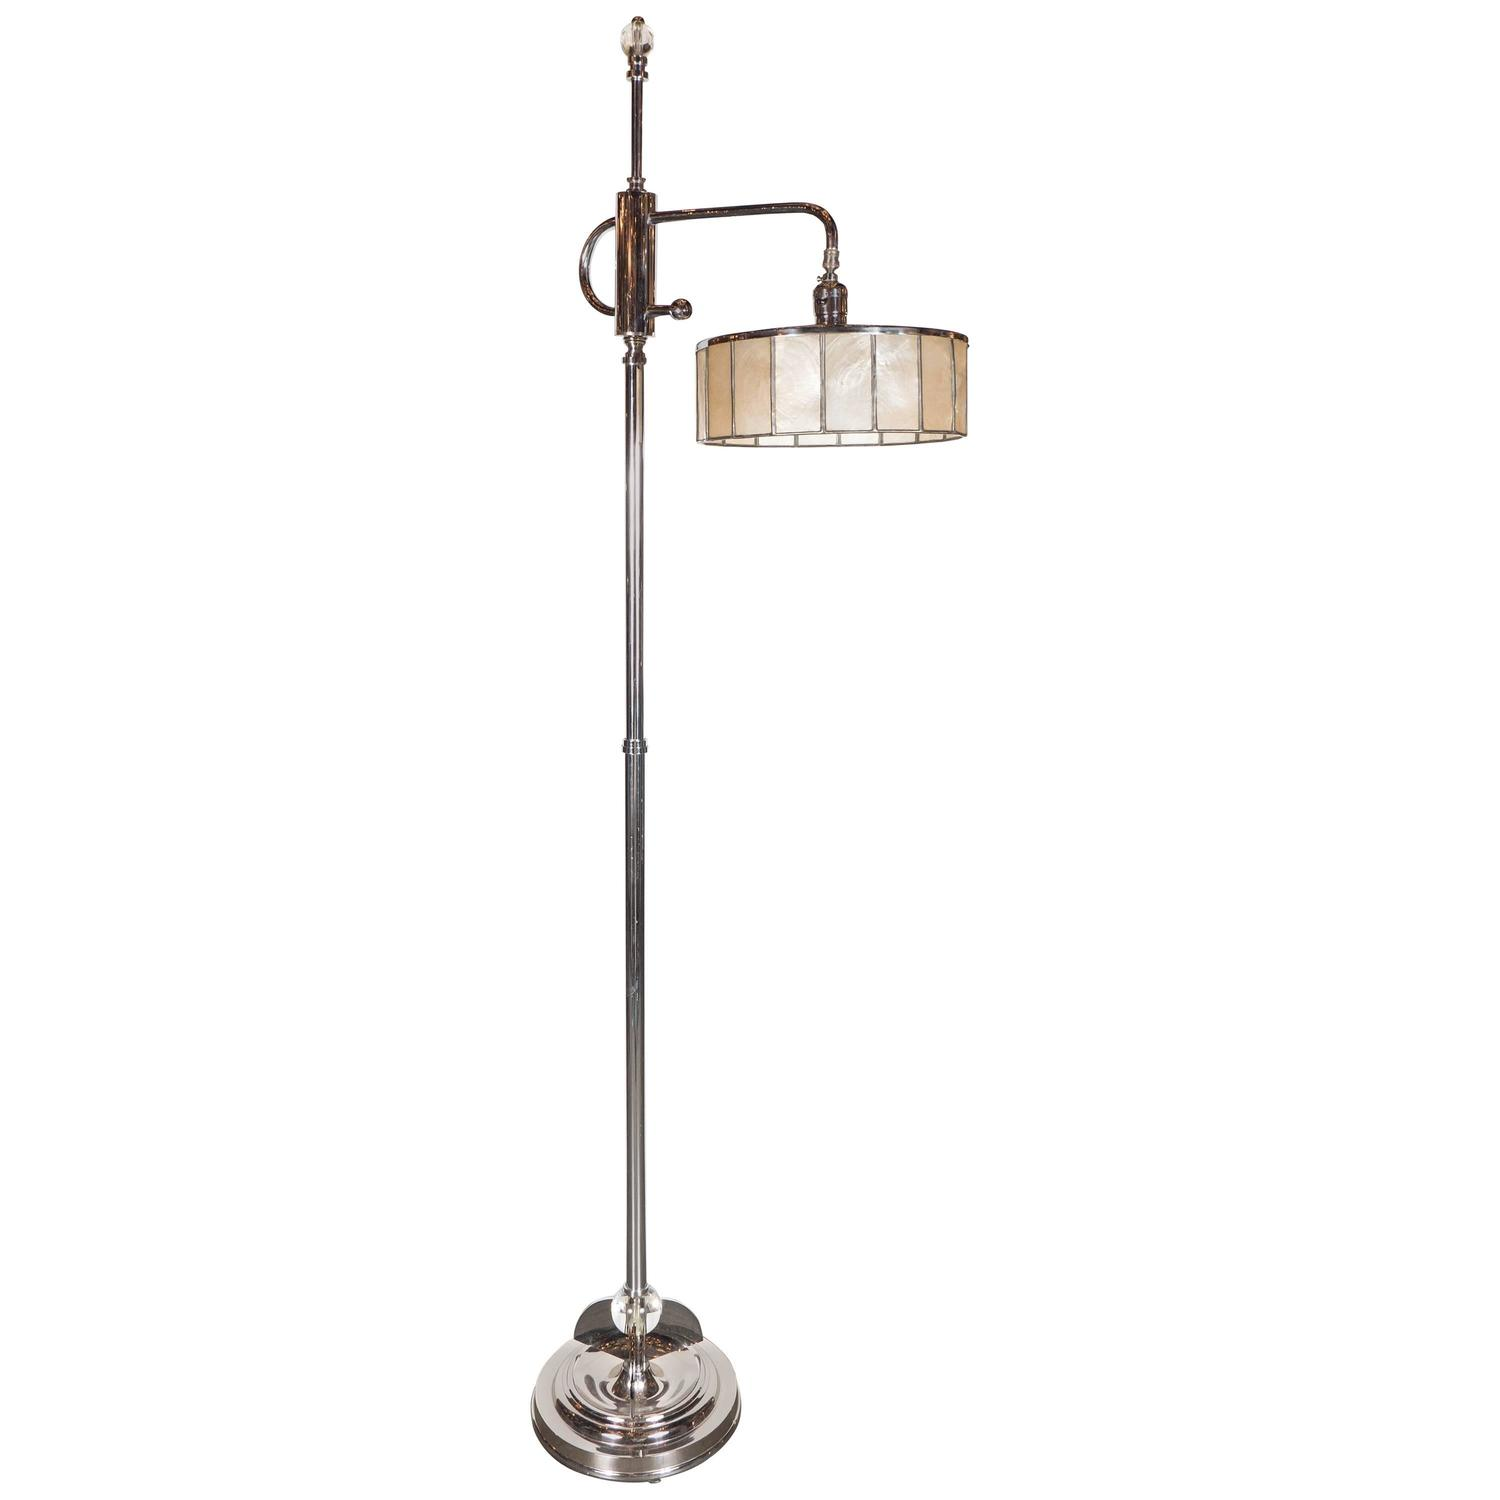 Art deco skyscraper style adjustable floor lamp with shell for Art deco style lamp